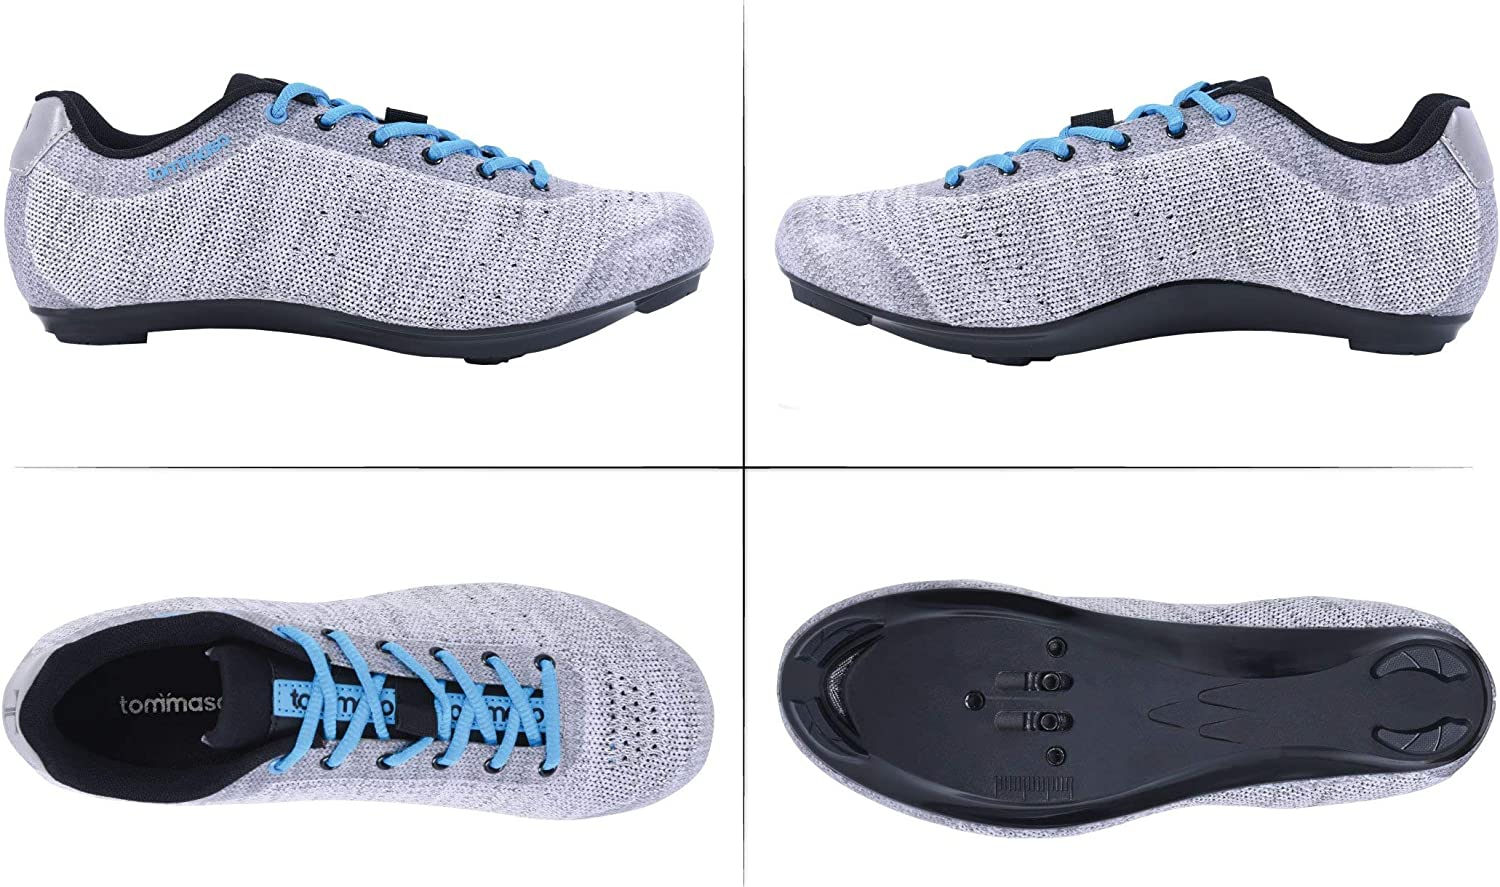 Black Tommaso Pista Aria Knit Womens Spin Class Ready Cycling Shoe and Bundle with Compatible Cleat Grey Pink Look Delta SPD Blue